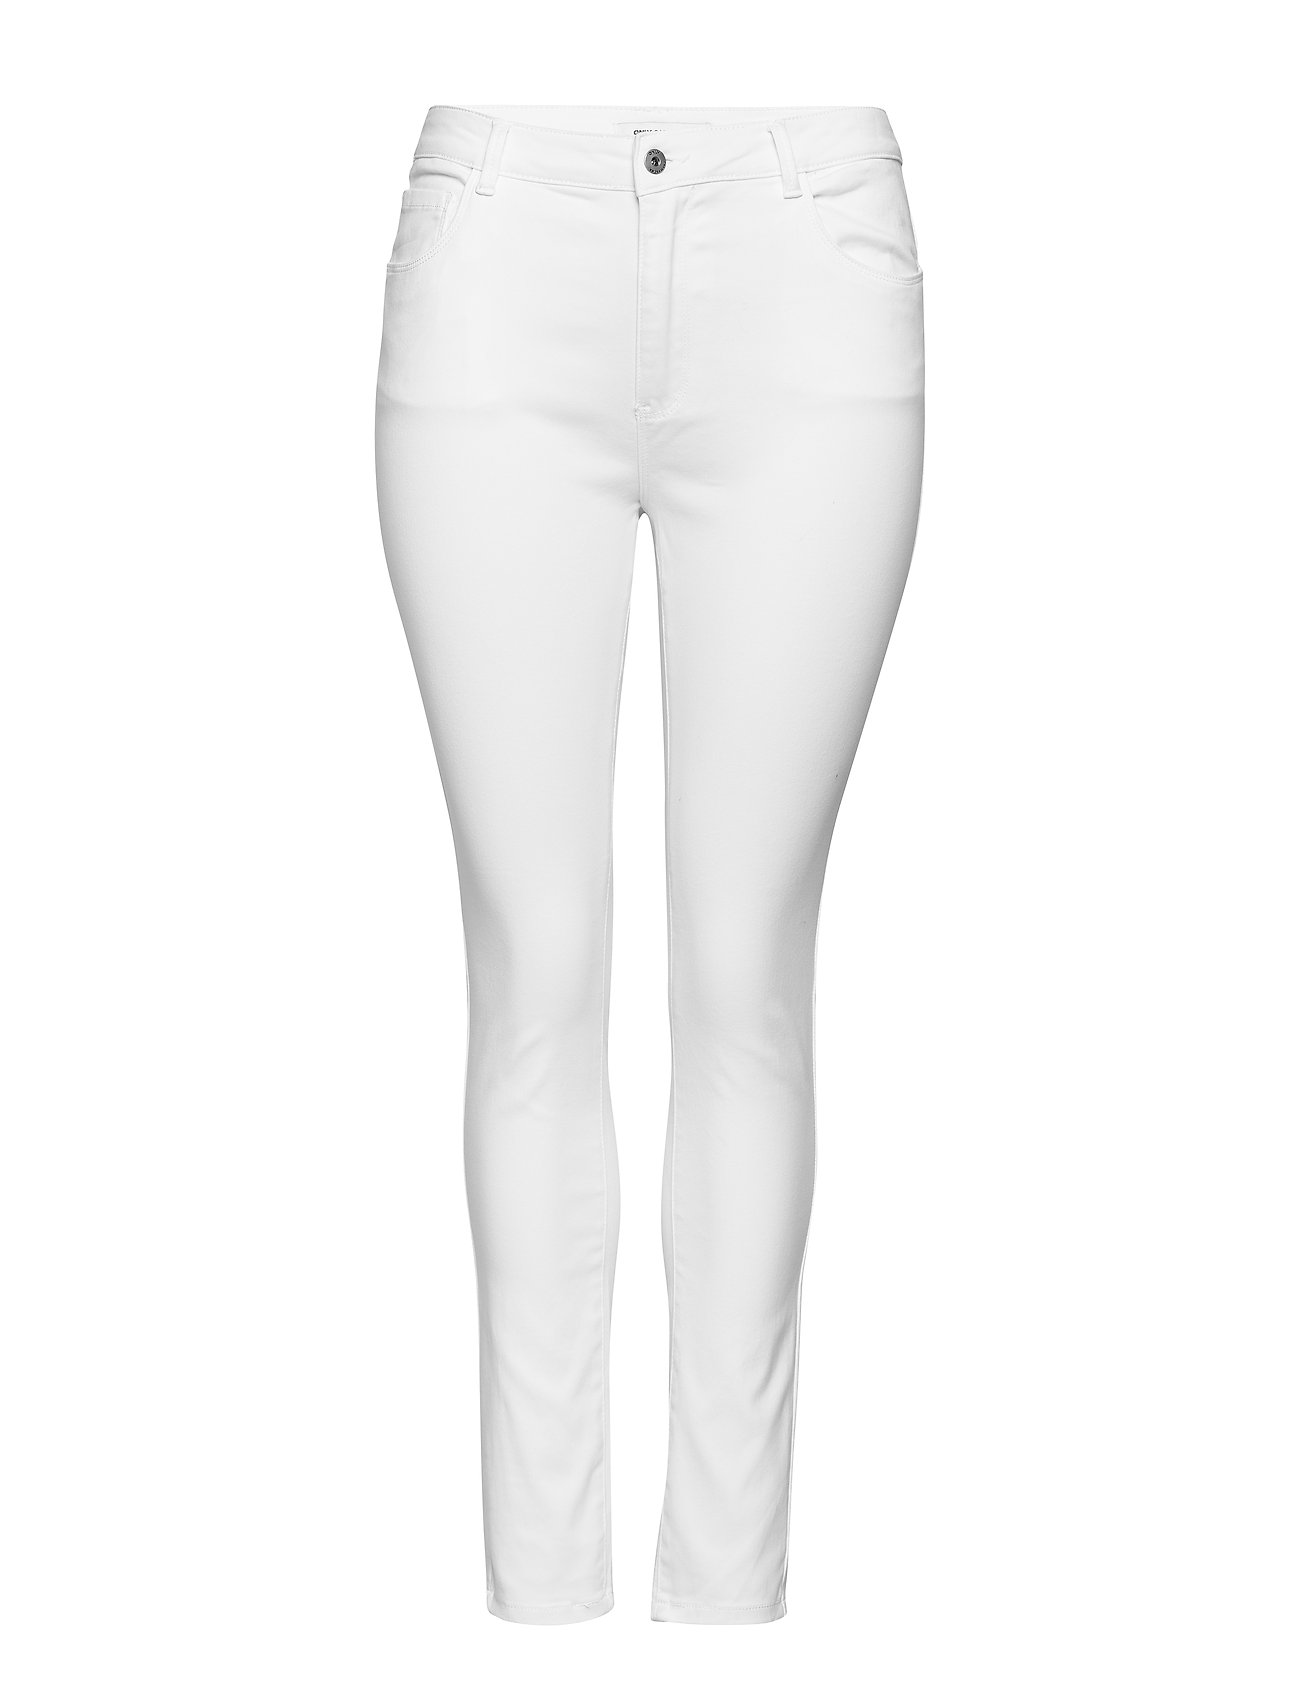 Image of Caraugusta Hw Skinny Jeans White Noos Skinny Jeans Hvid ONLY Carmakoma (3349214685)